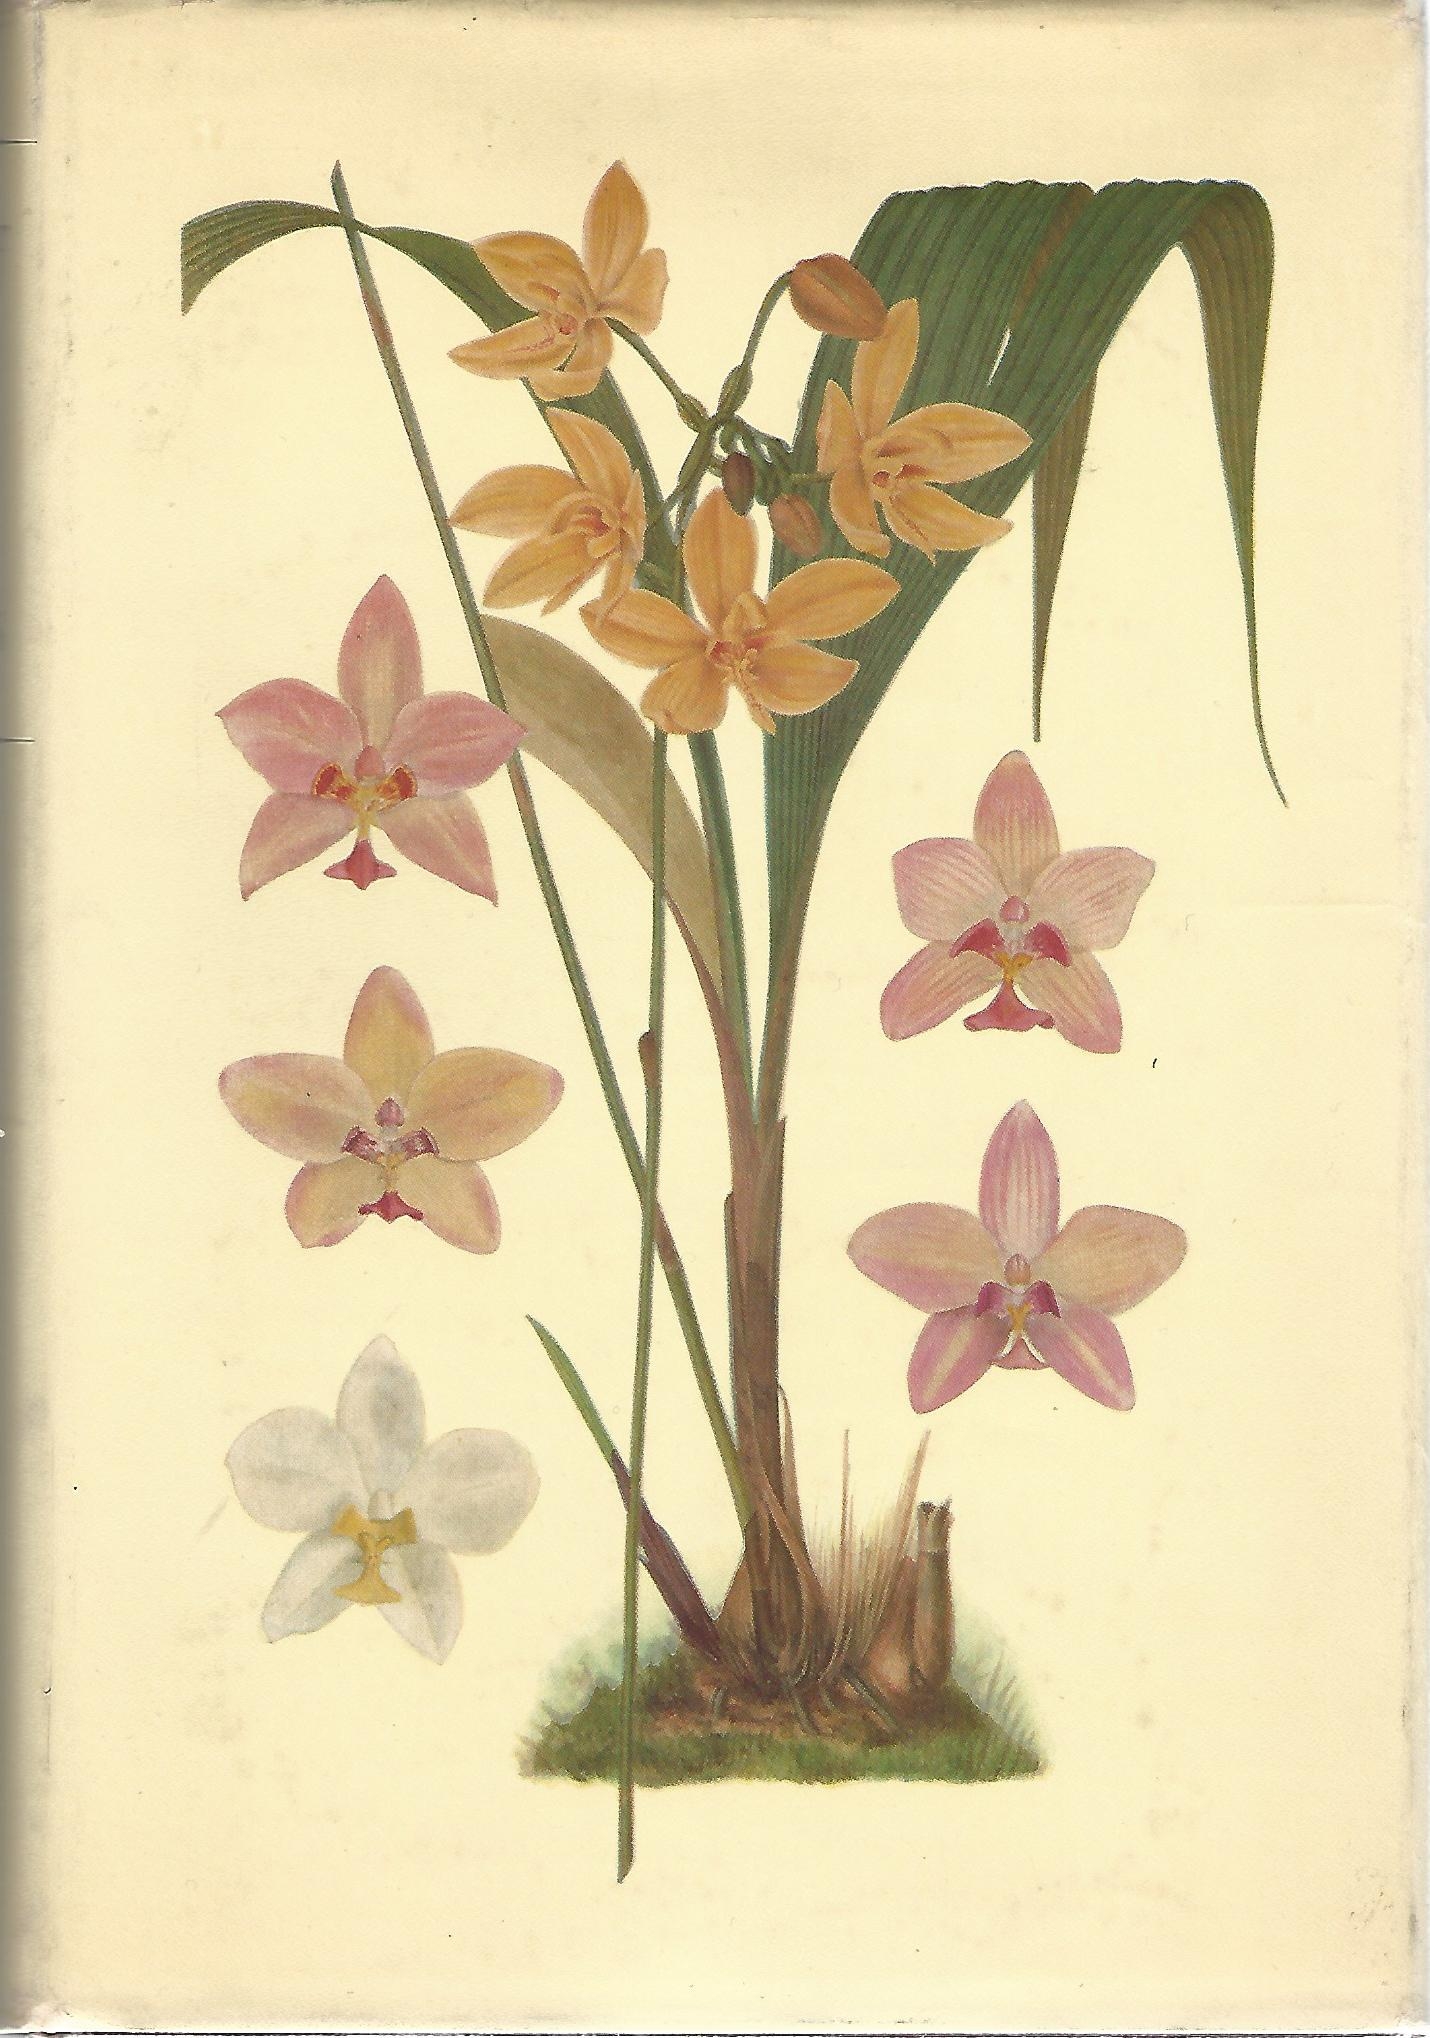 Image for A Revised Flora of Malaya: An Illustrated Systematic Account of the Malayan Flora, Including Commonly Cultivated Plants, Volume 1: Orchids of Malaya.